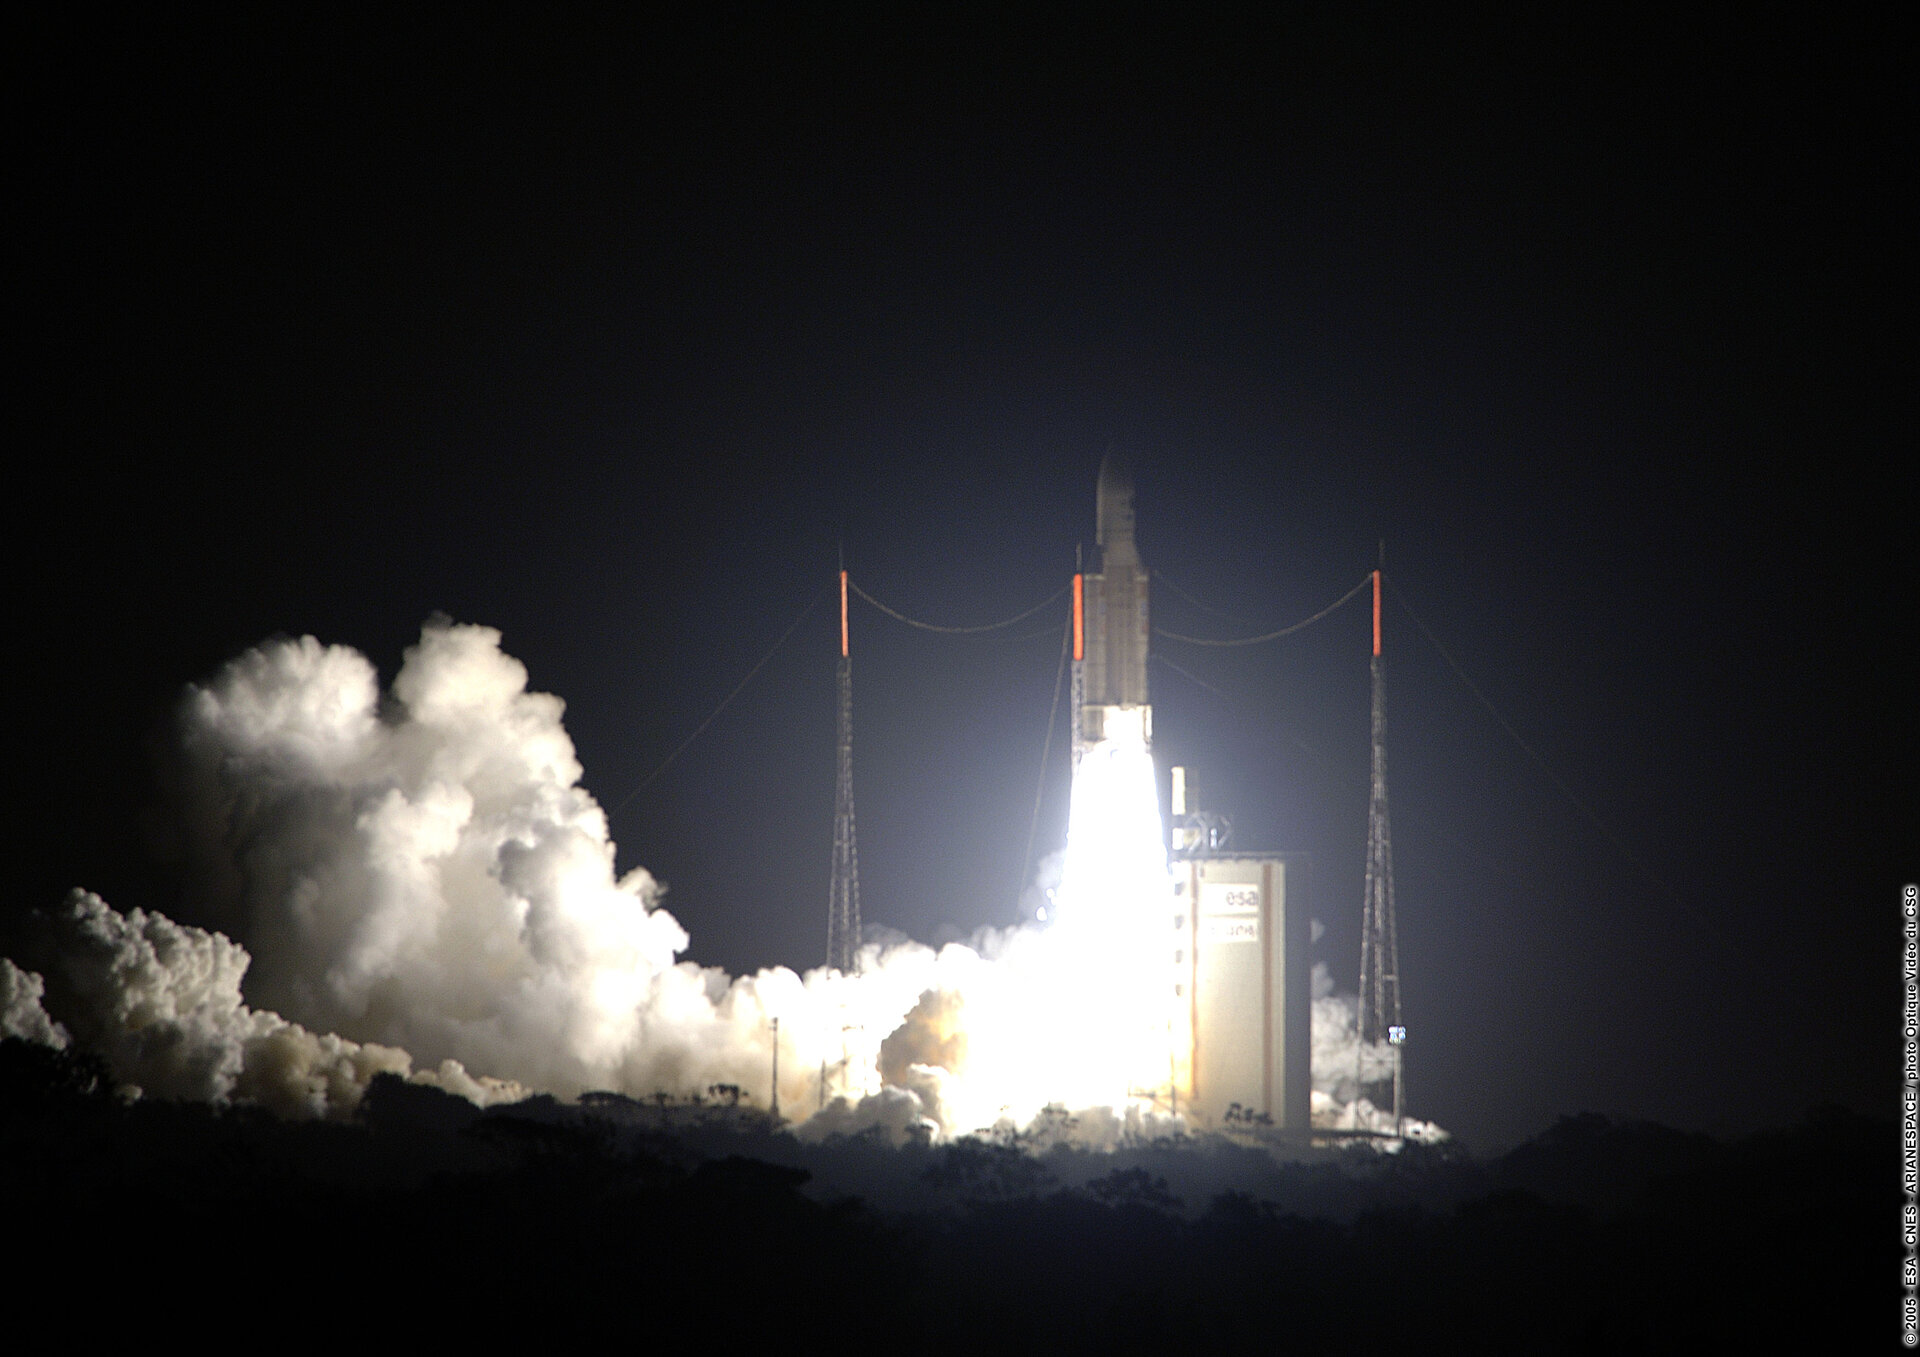 Liftoff of Ariane 5 carrying MSG-2